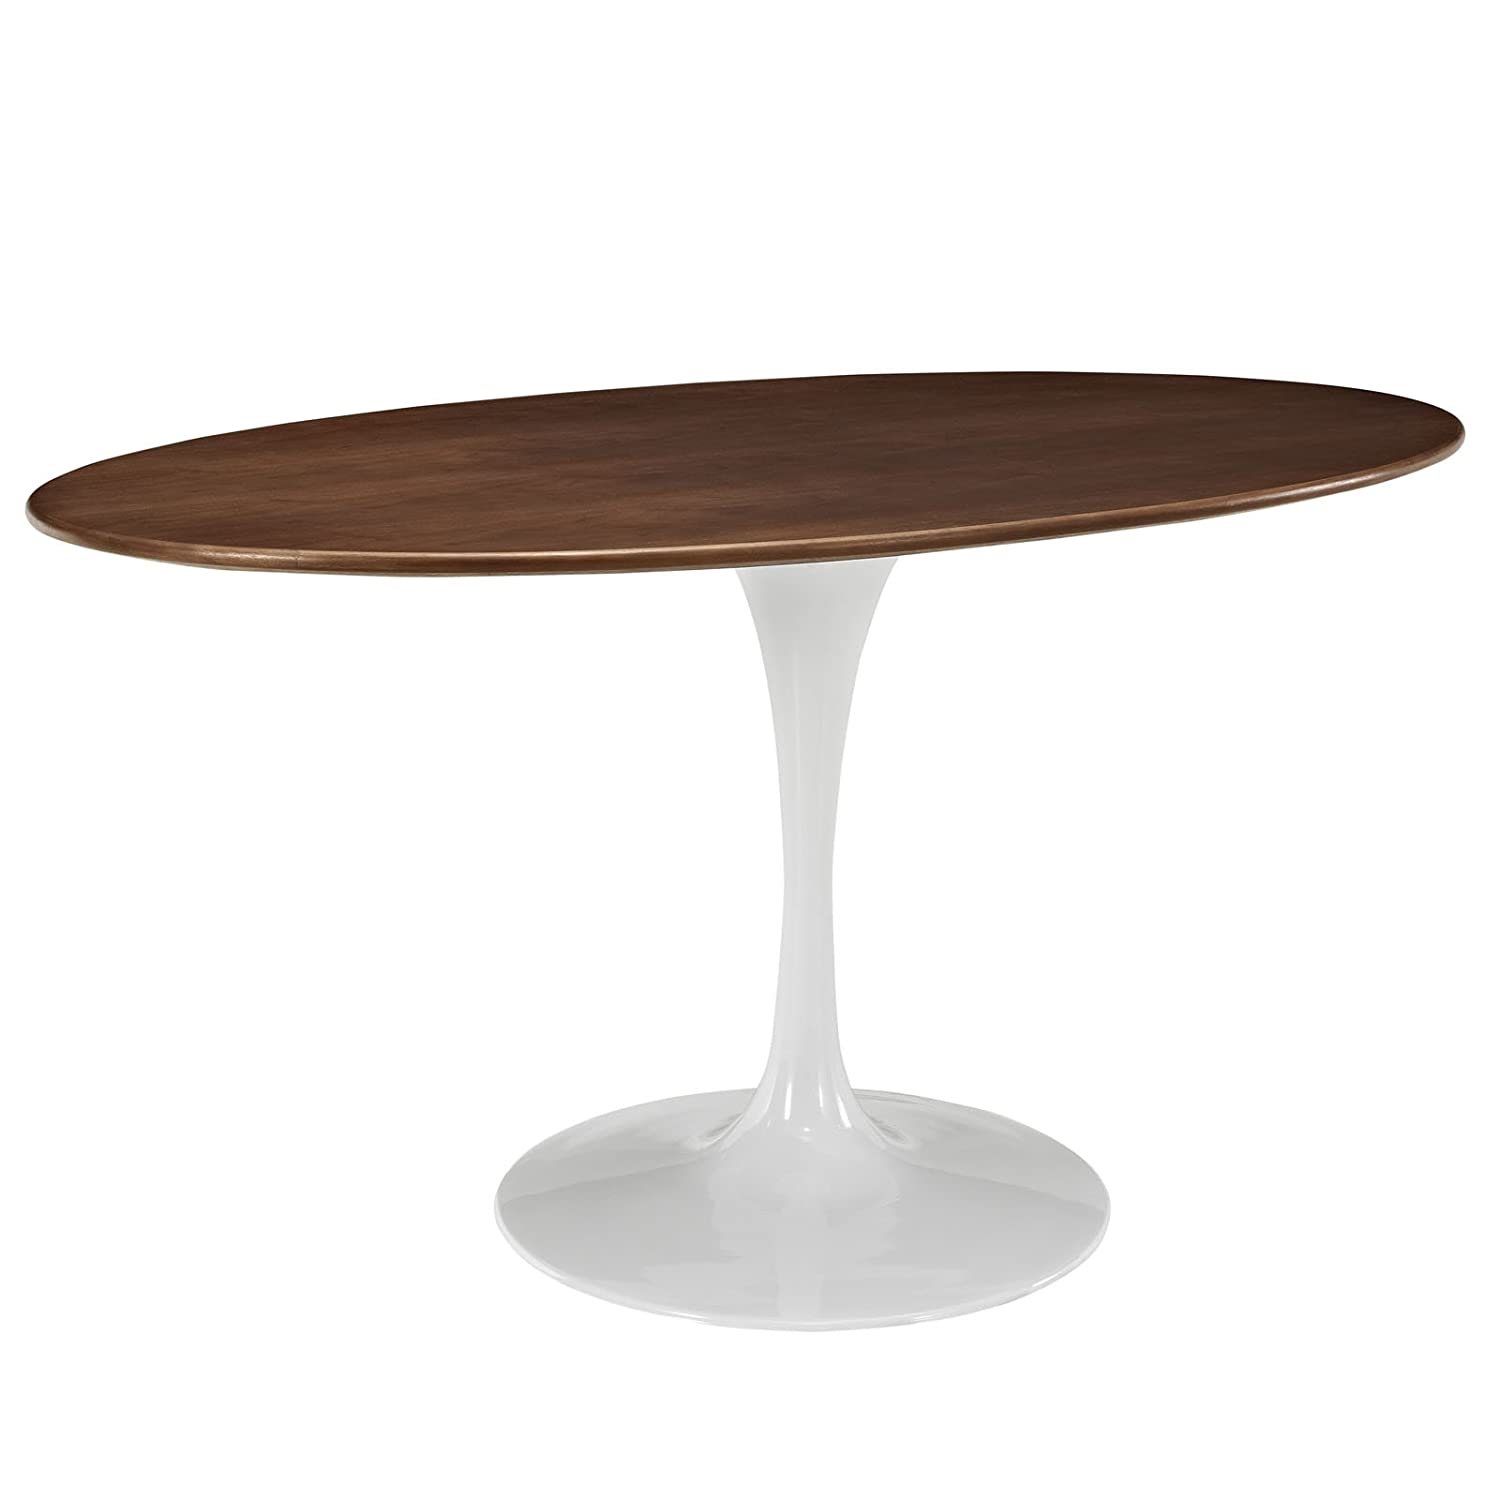 tables on table coffe pedestal dinning broadbent best pinterest rob images occasional oval